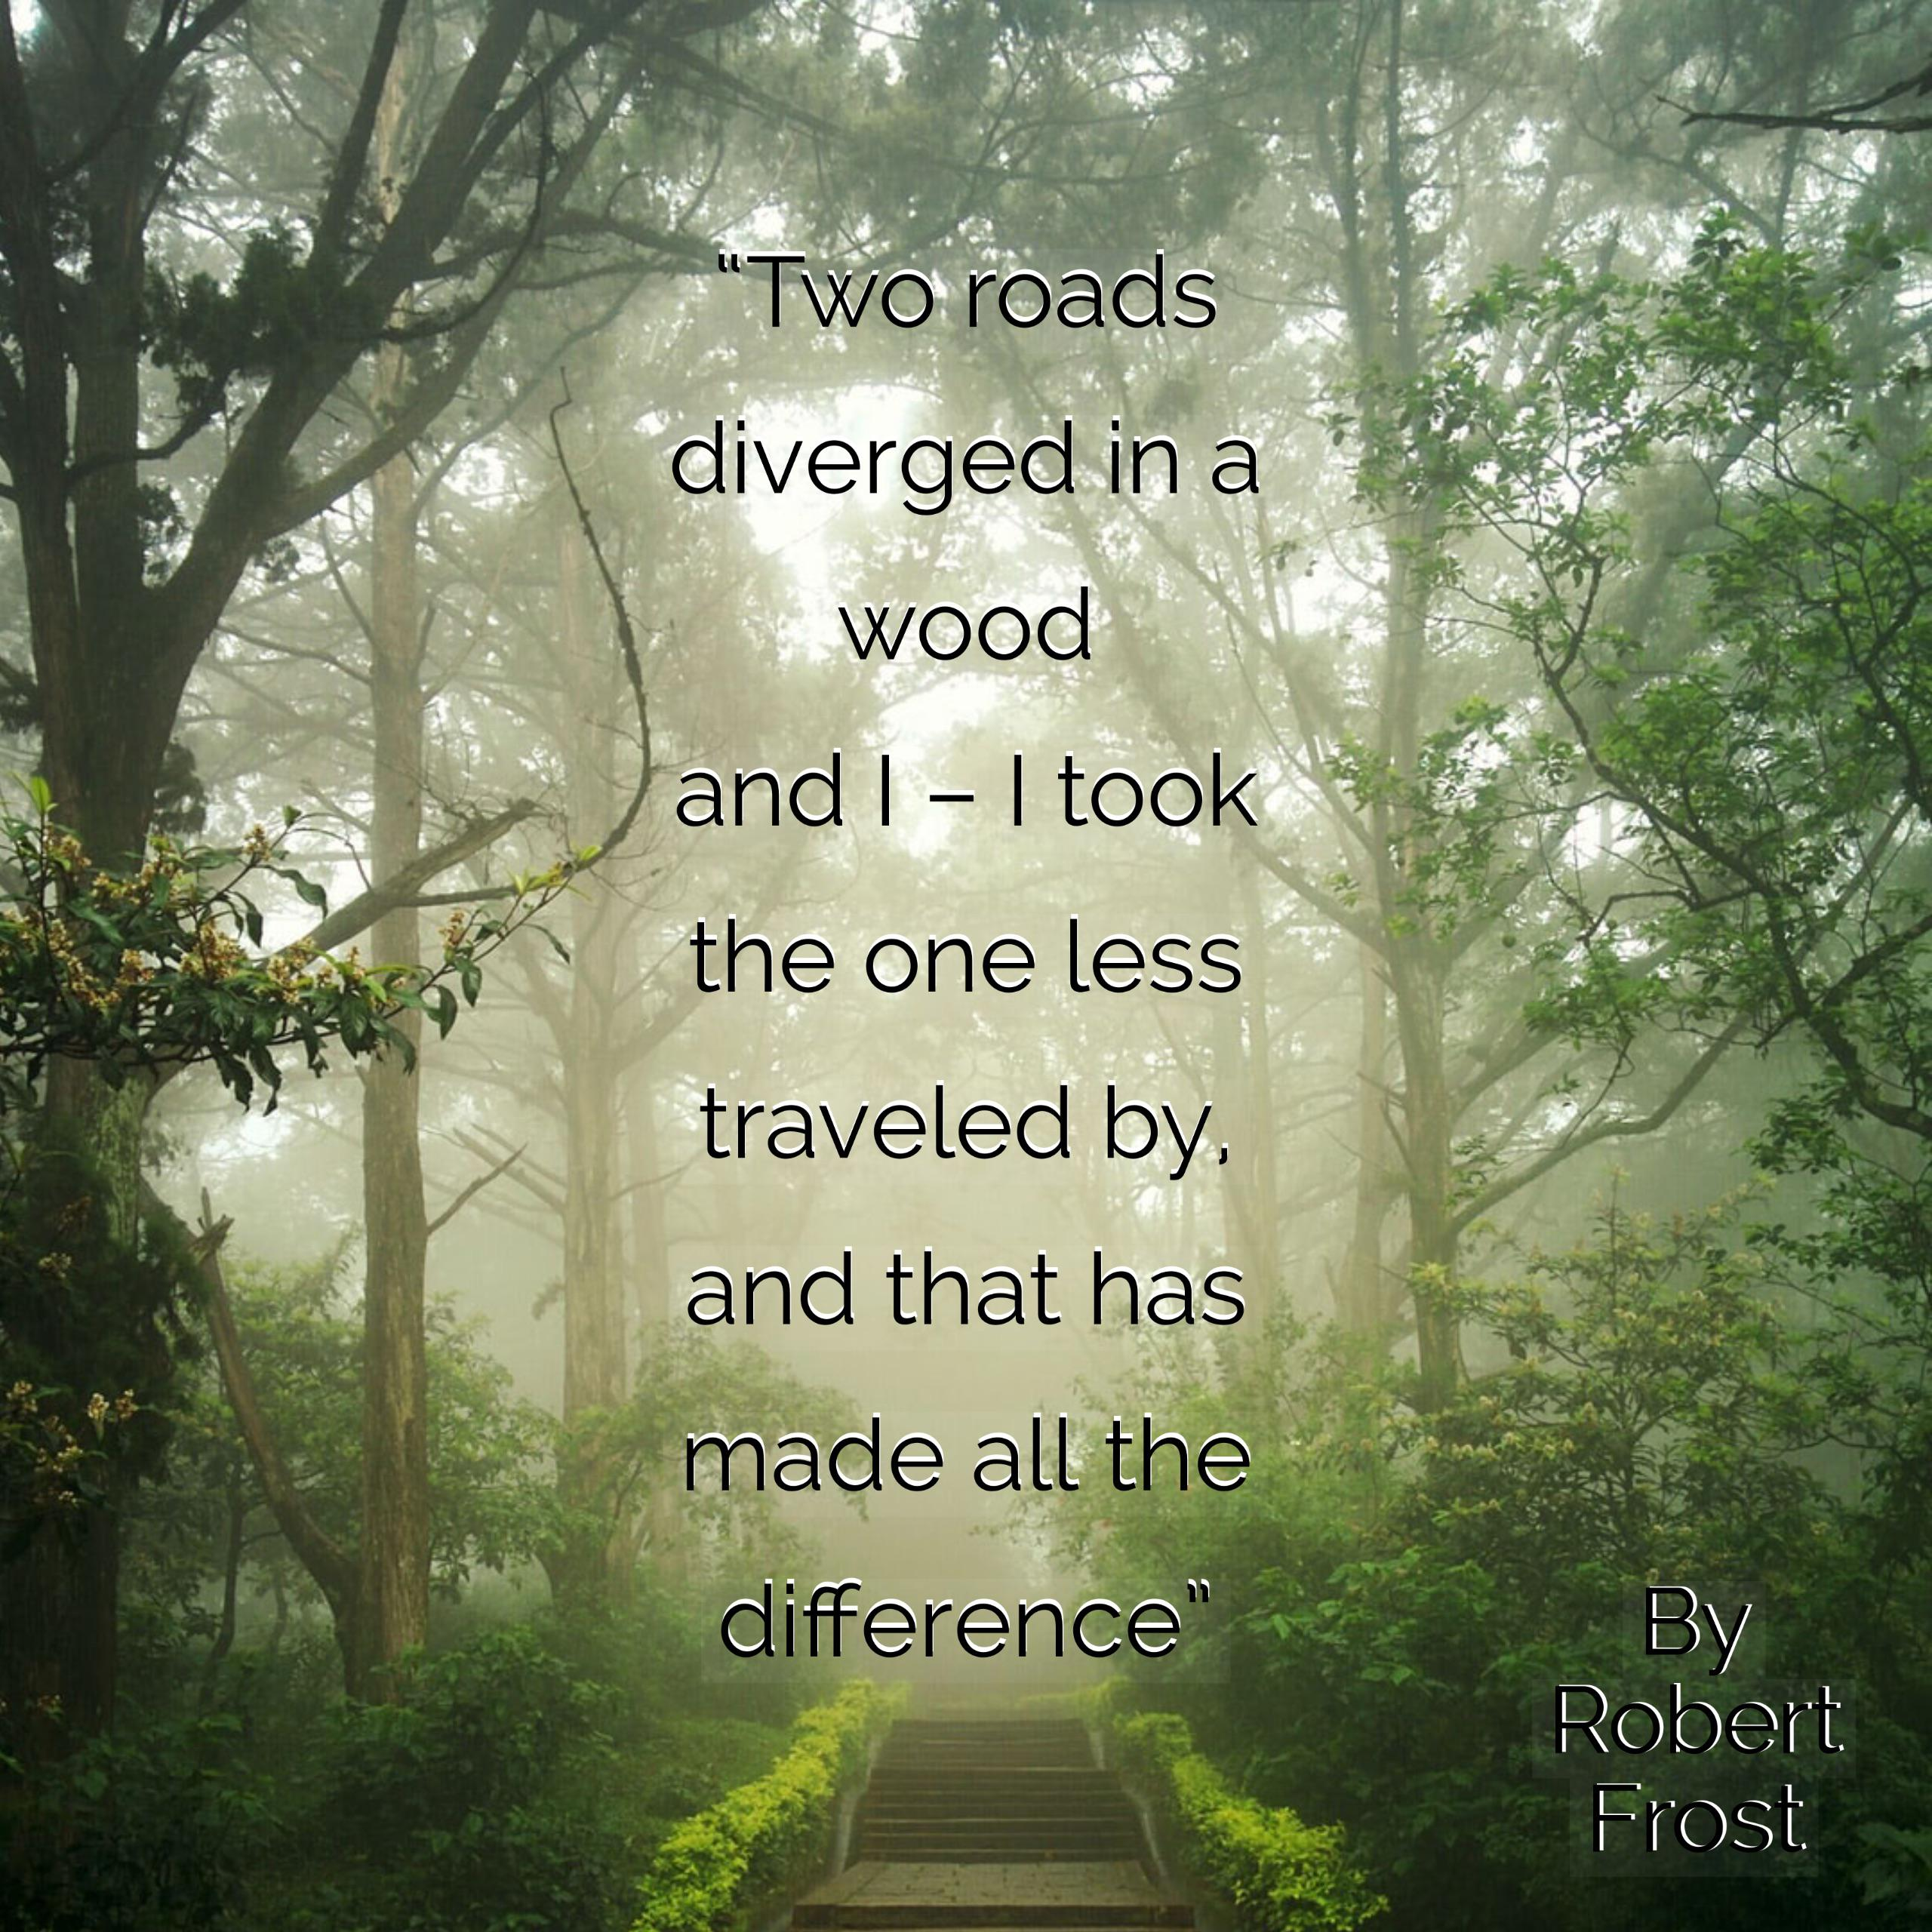 diverged in a wood and | — I took the one less traveled by. and https://inspirational.ly